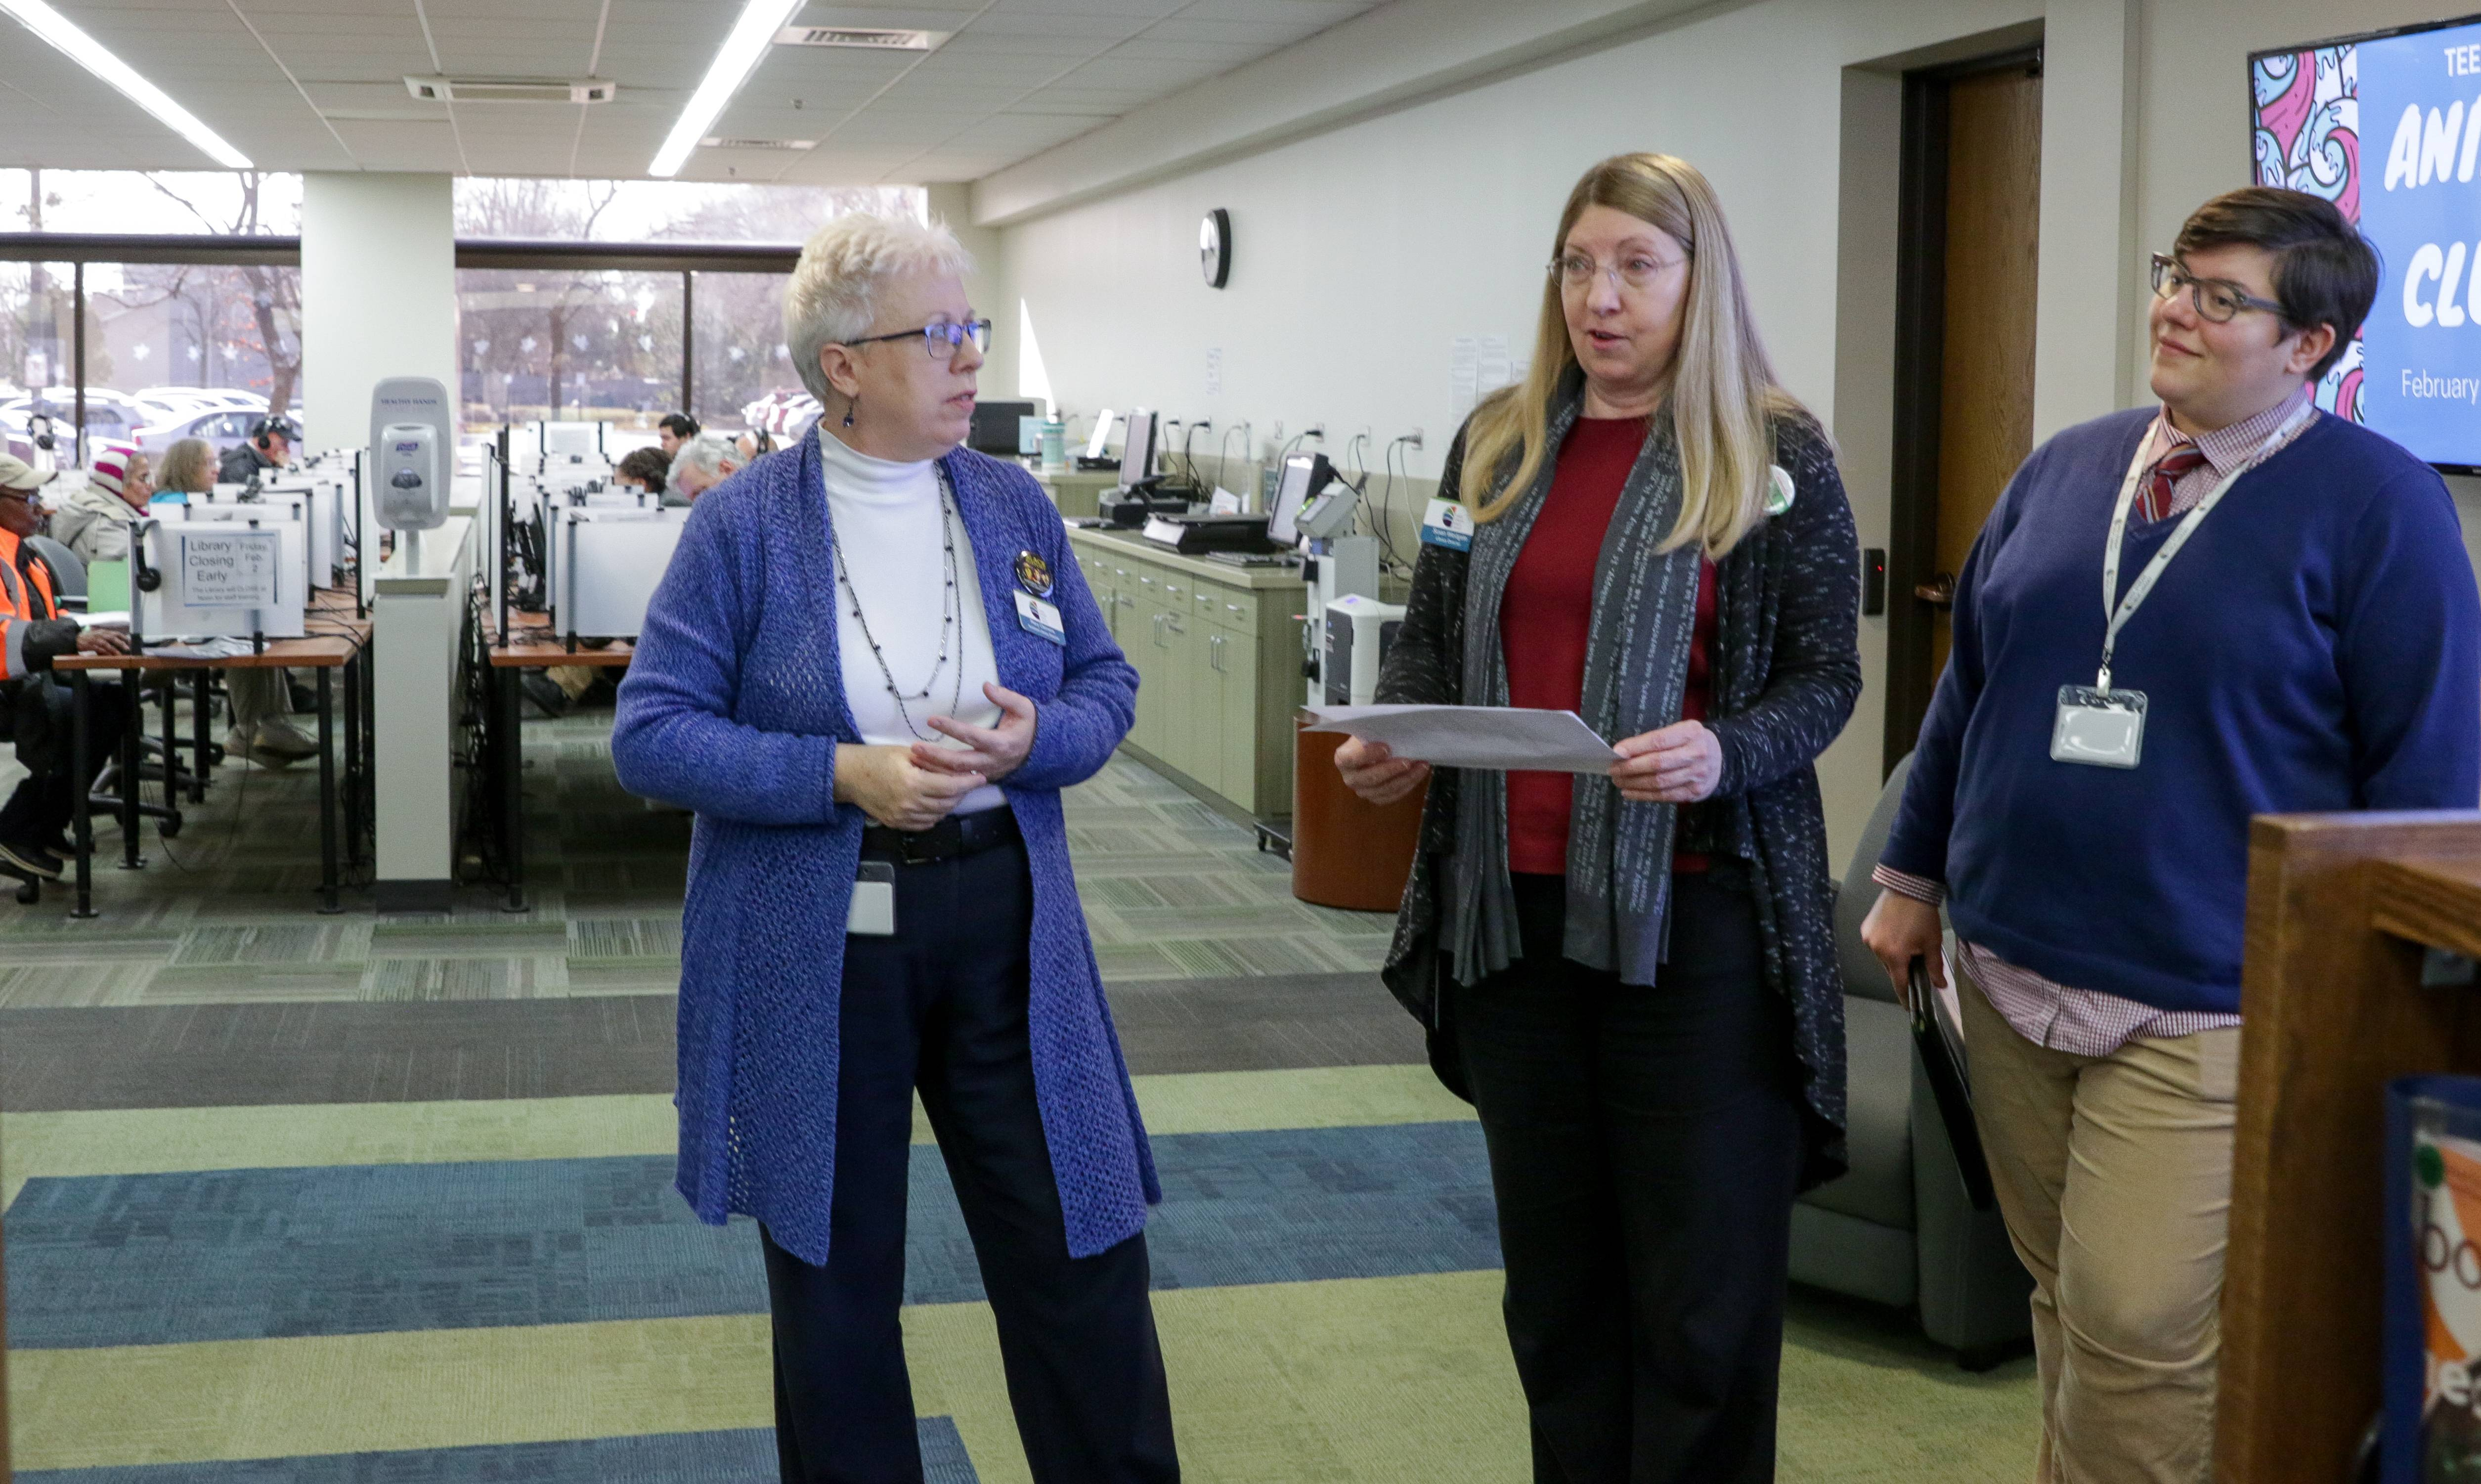 Carol Stream Public Library Assistant Director Mary Clemens, Director Susan Westgate, and Allison Porch, marketing coordinator, talk over plans for a $5.4 million renovation. The computer area behind them would become a new early literacy area.